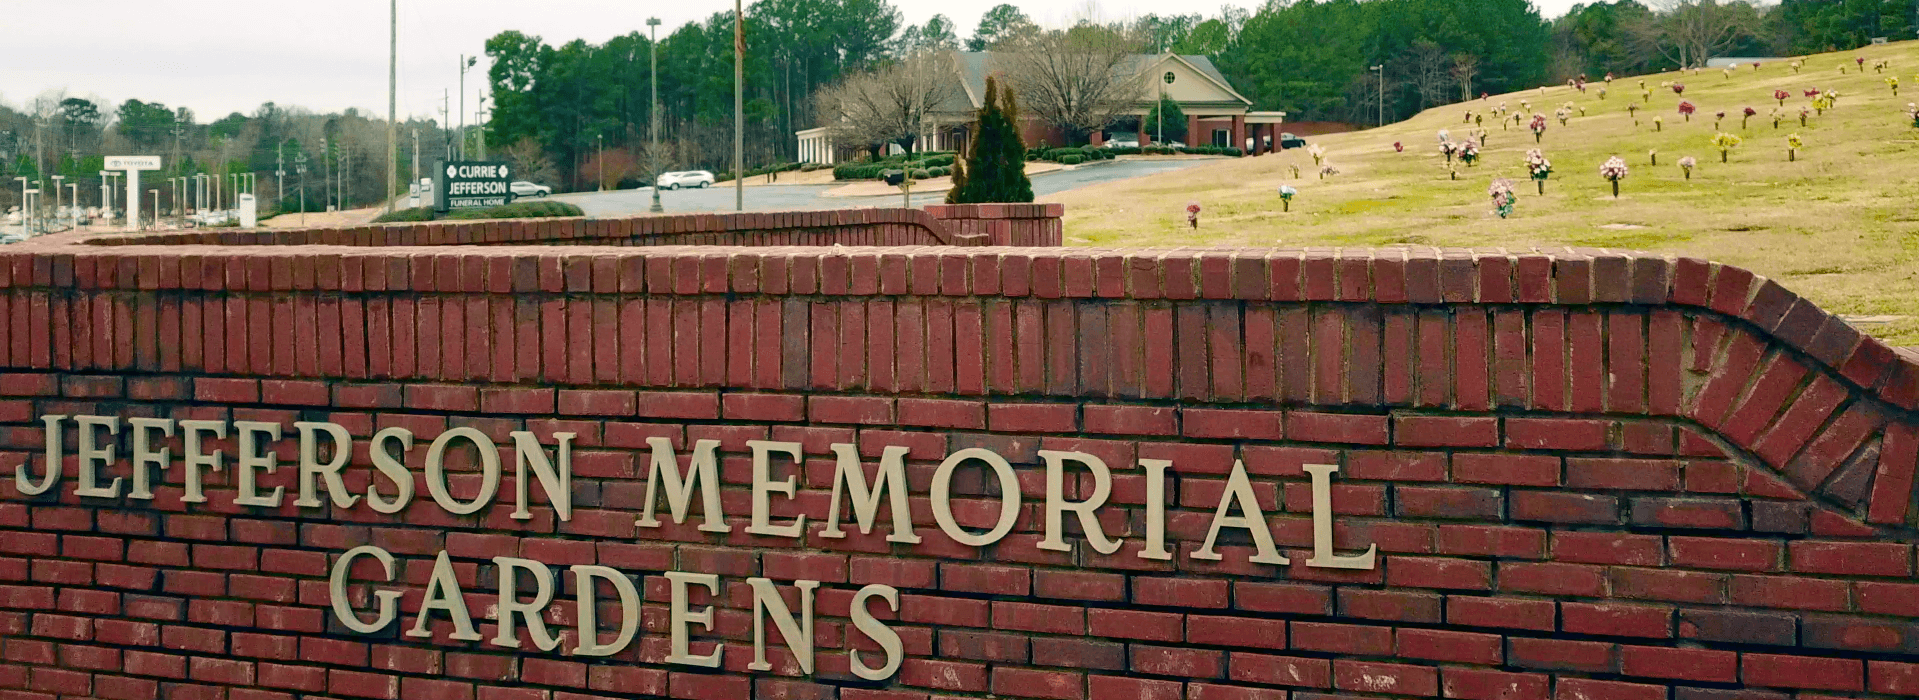 Currie-Jefferson Funeral Home & Memorial Gardens | Hoover AL funeral ...